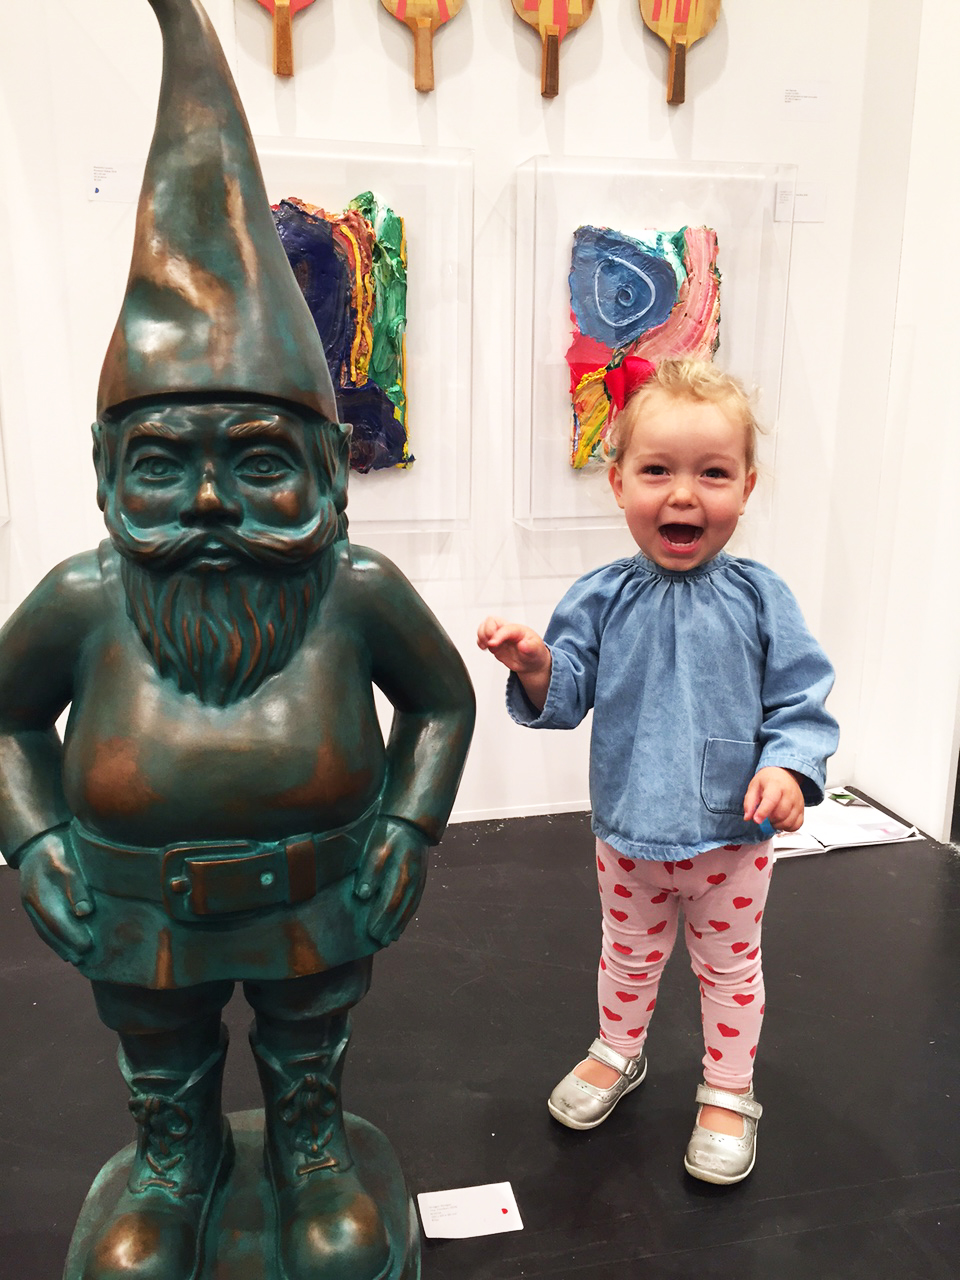 Alex's daughter Anouk sizing up the Gregor Kregar bronze gnome sculpture at Michael Reid Art.